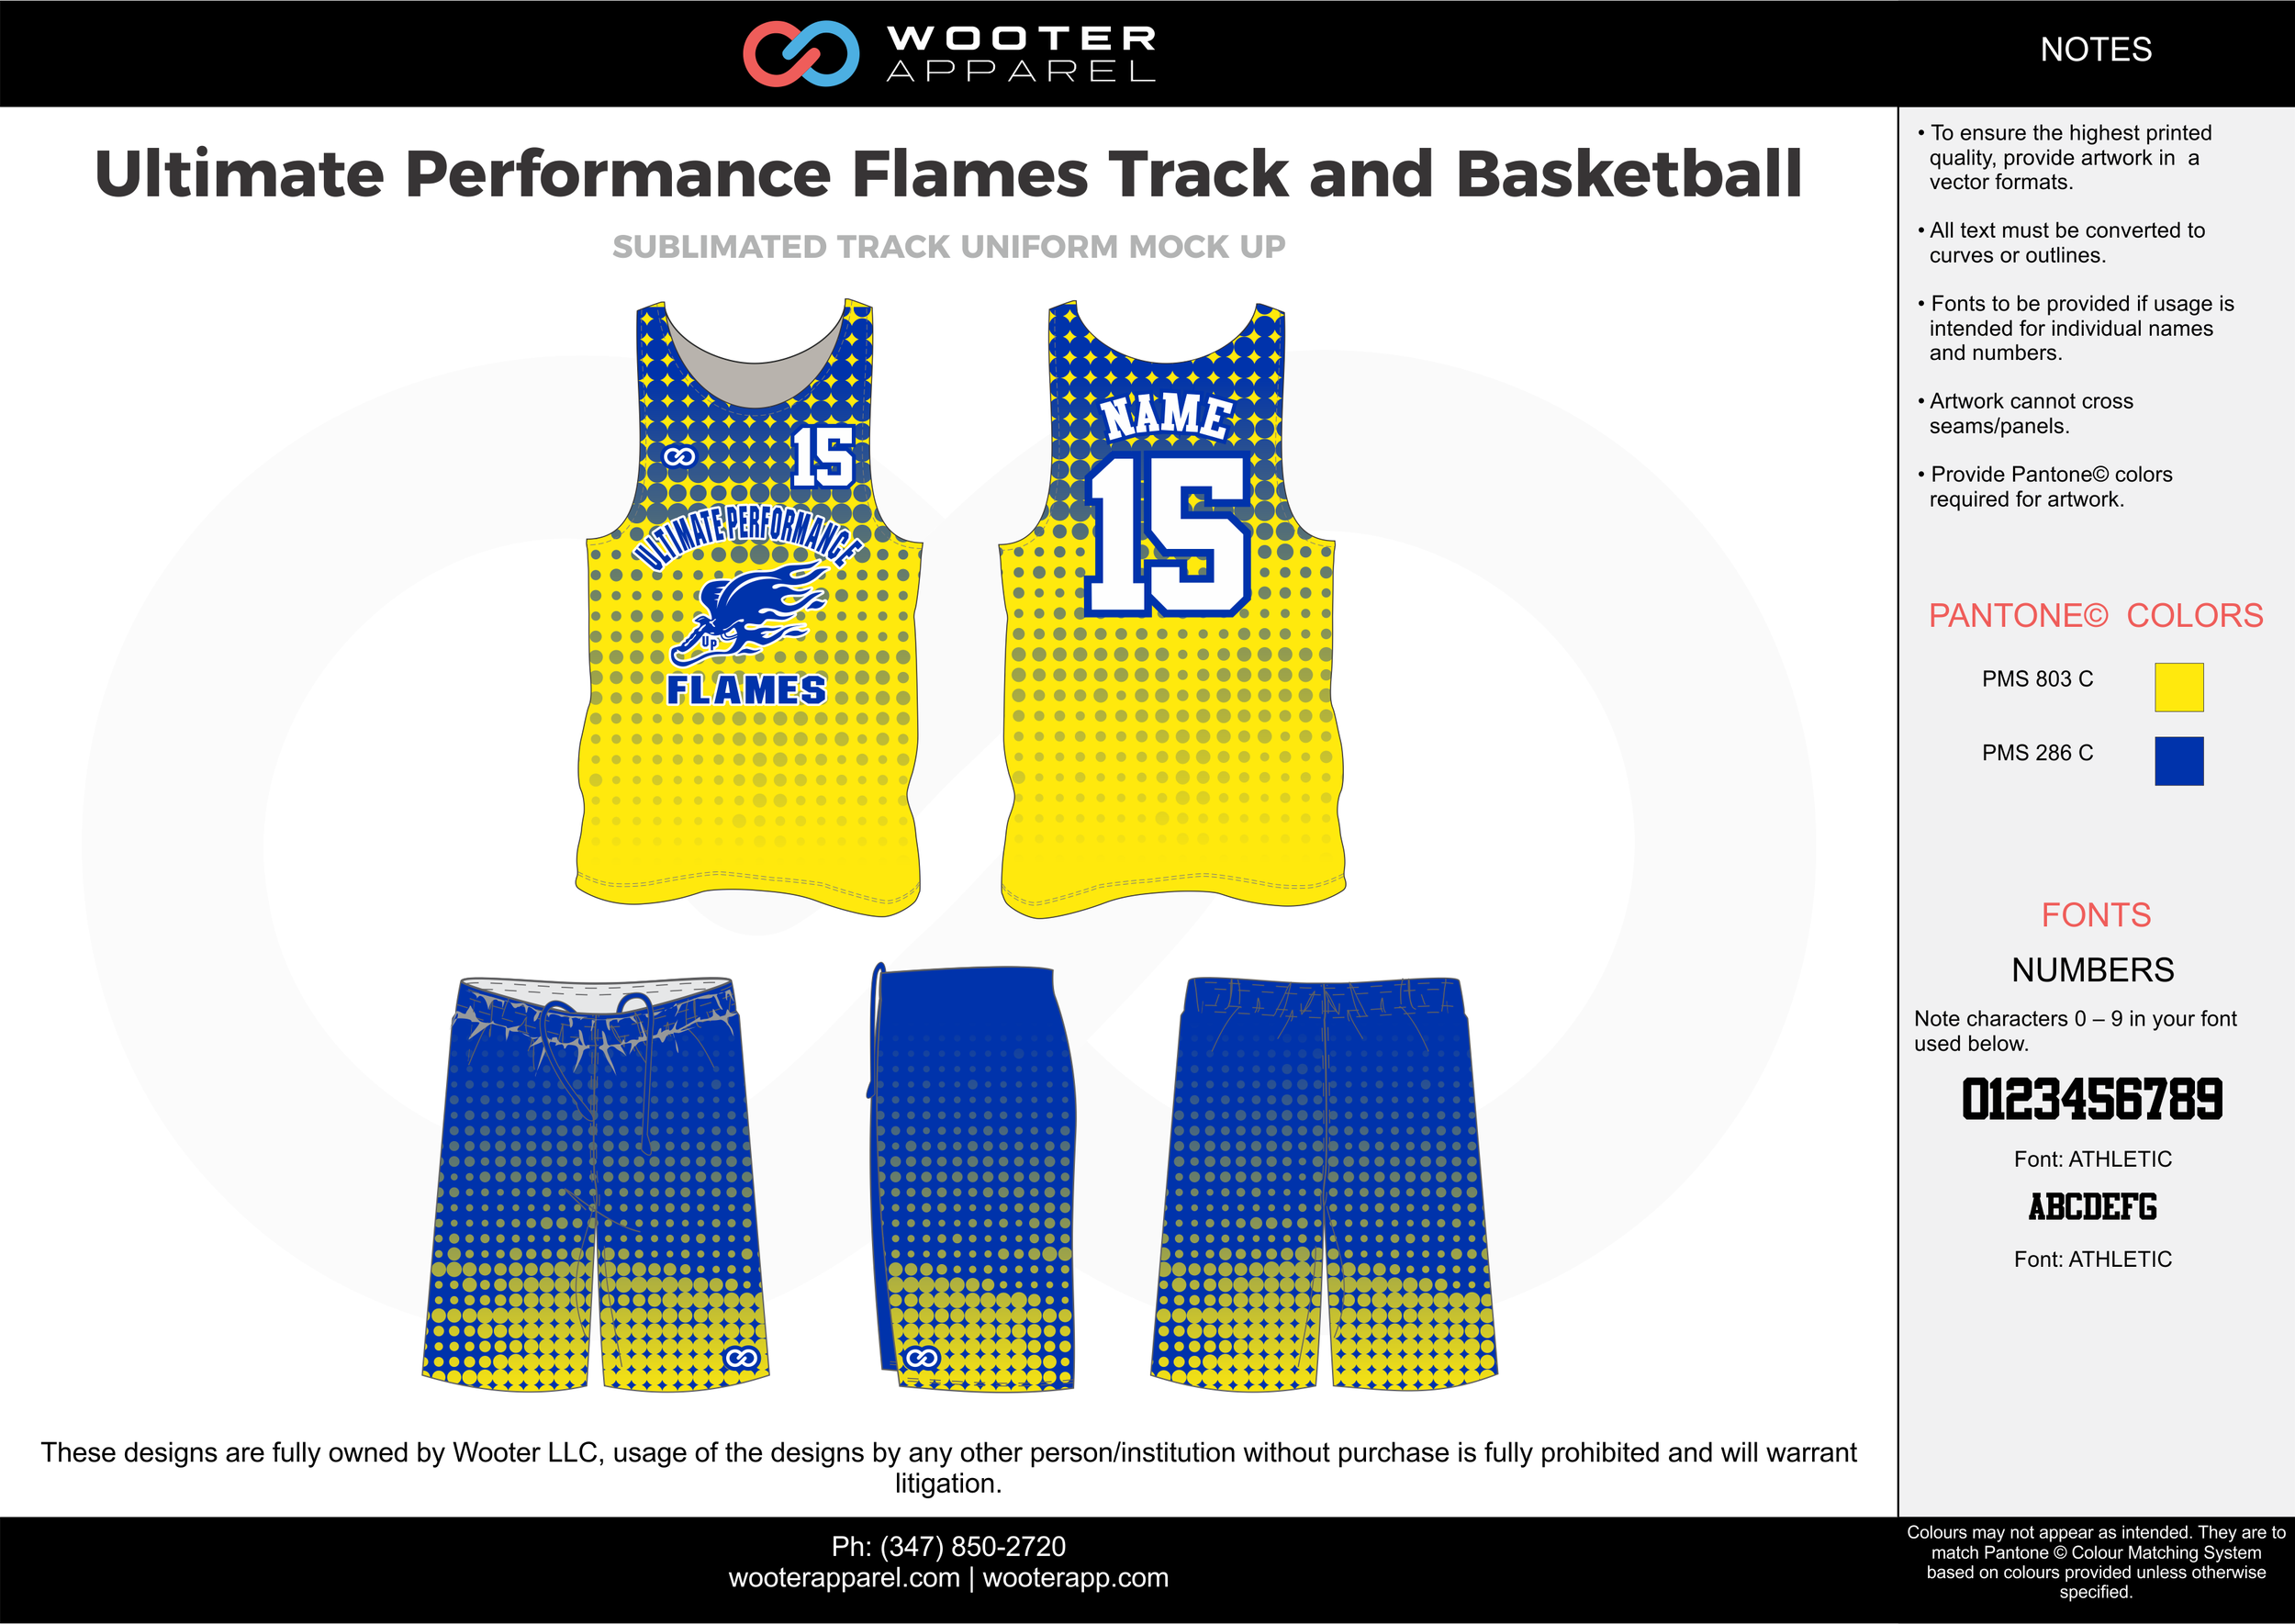 Ultimate Performance Flames Track and Basketball Yellow Blue and White Basketball Uniforms Jerseys and Shorts